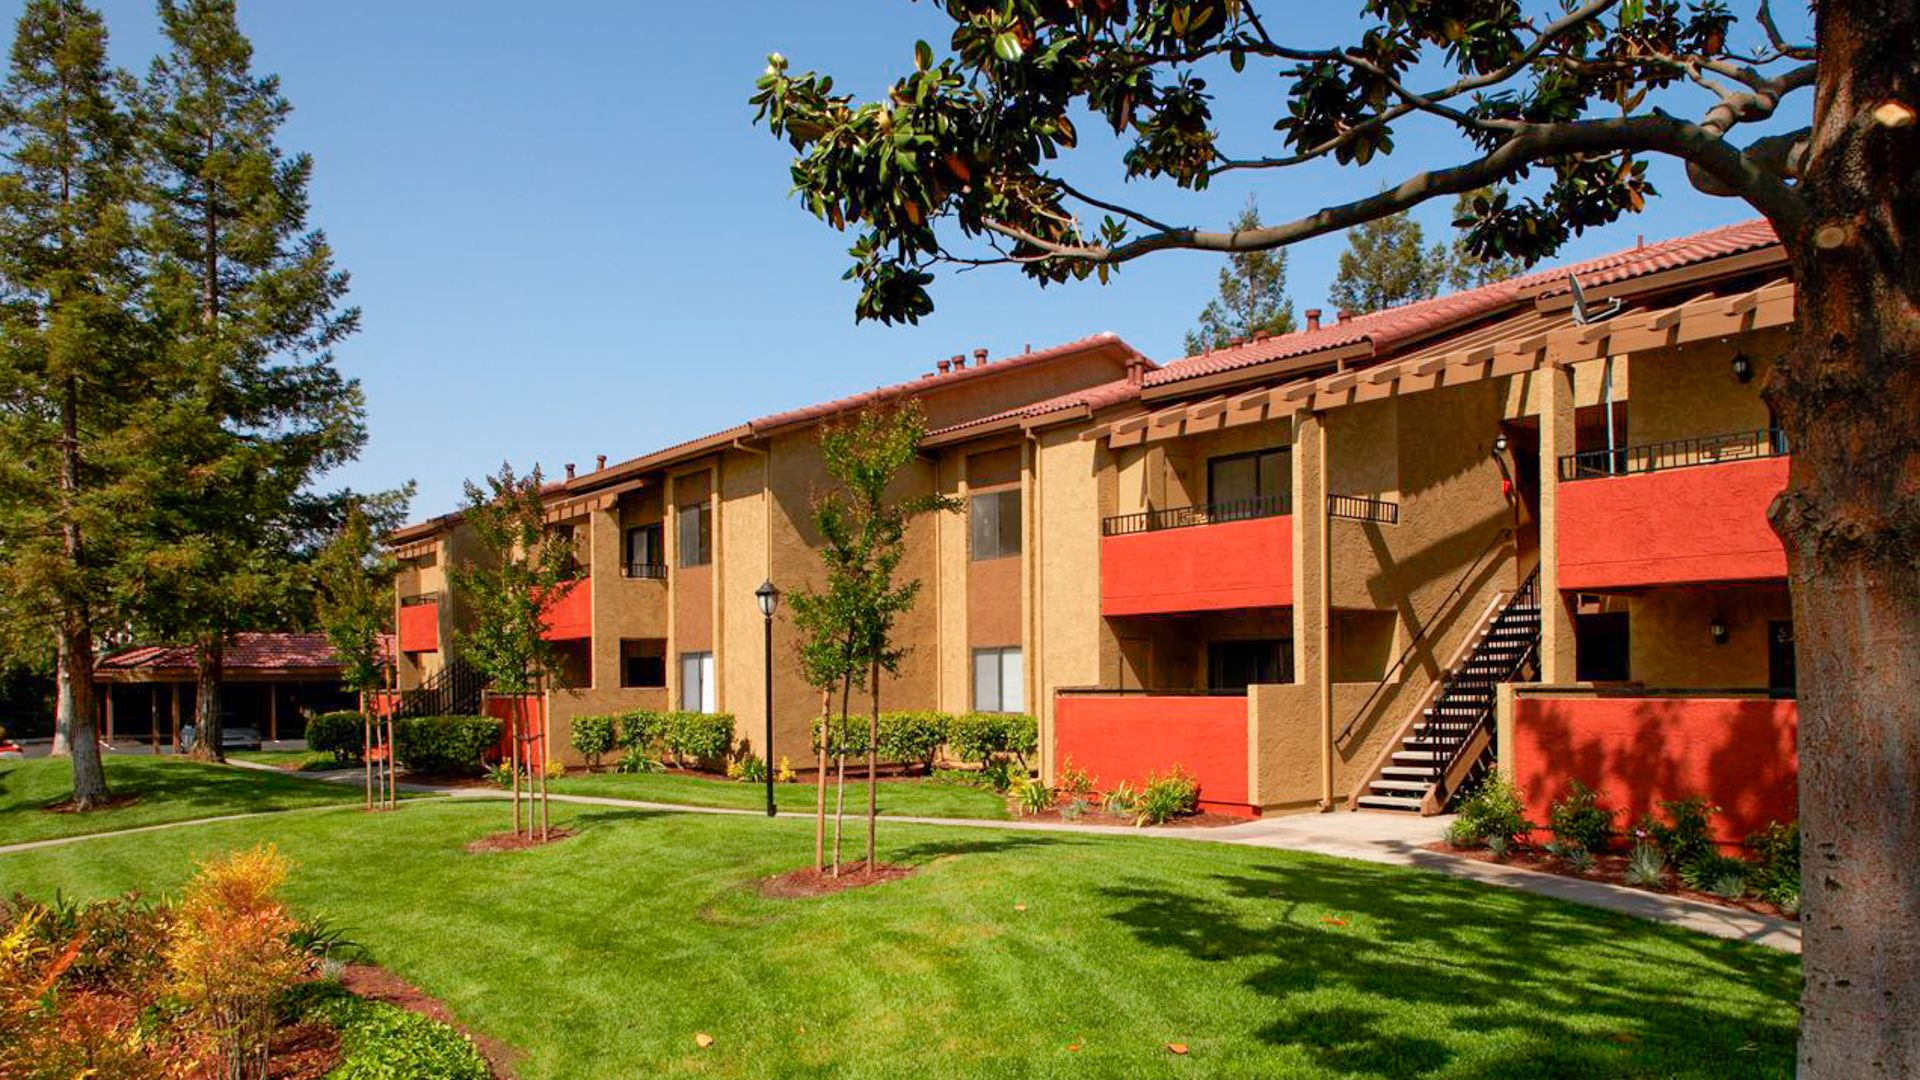 Verde Apartments  San Jose  5322 Wong Drive  EquityApartmentscom